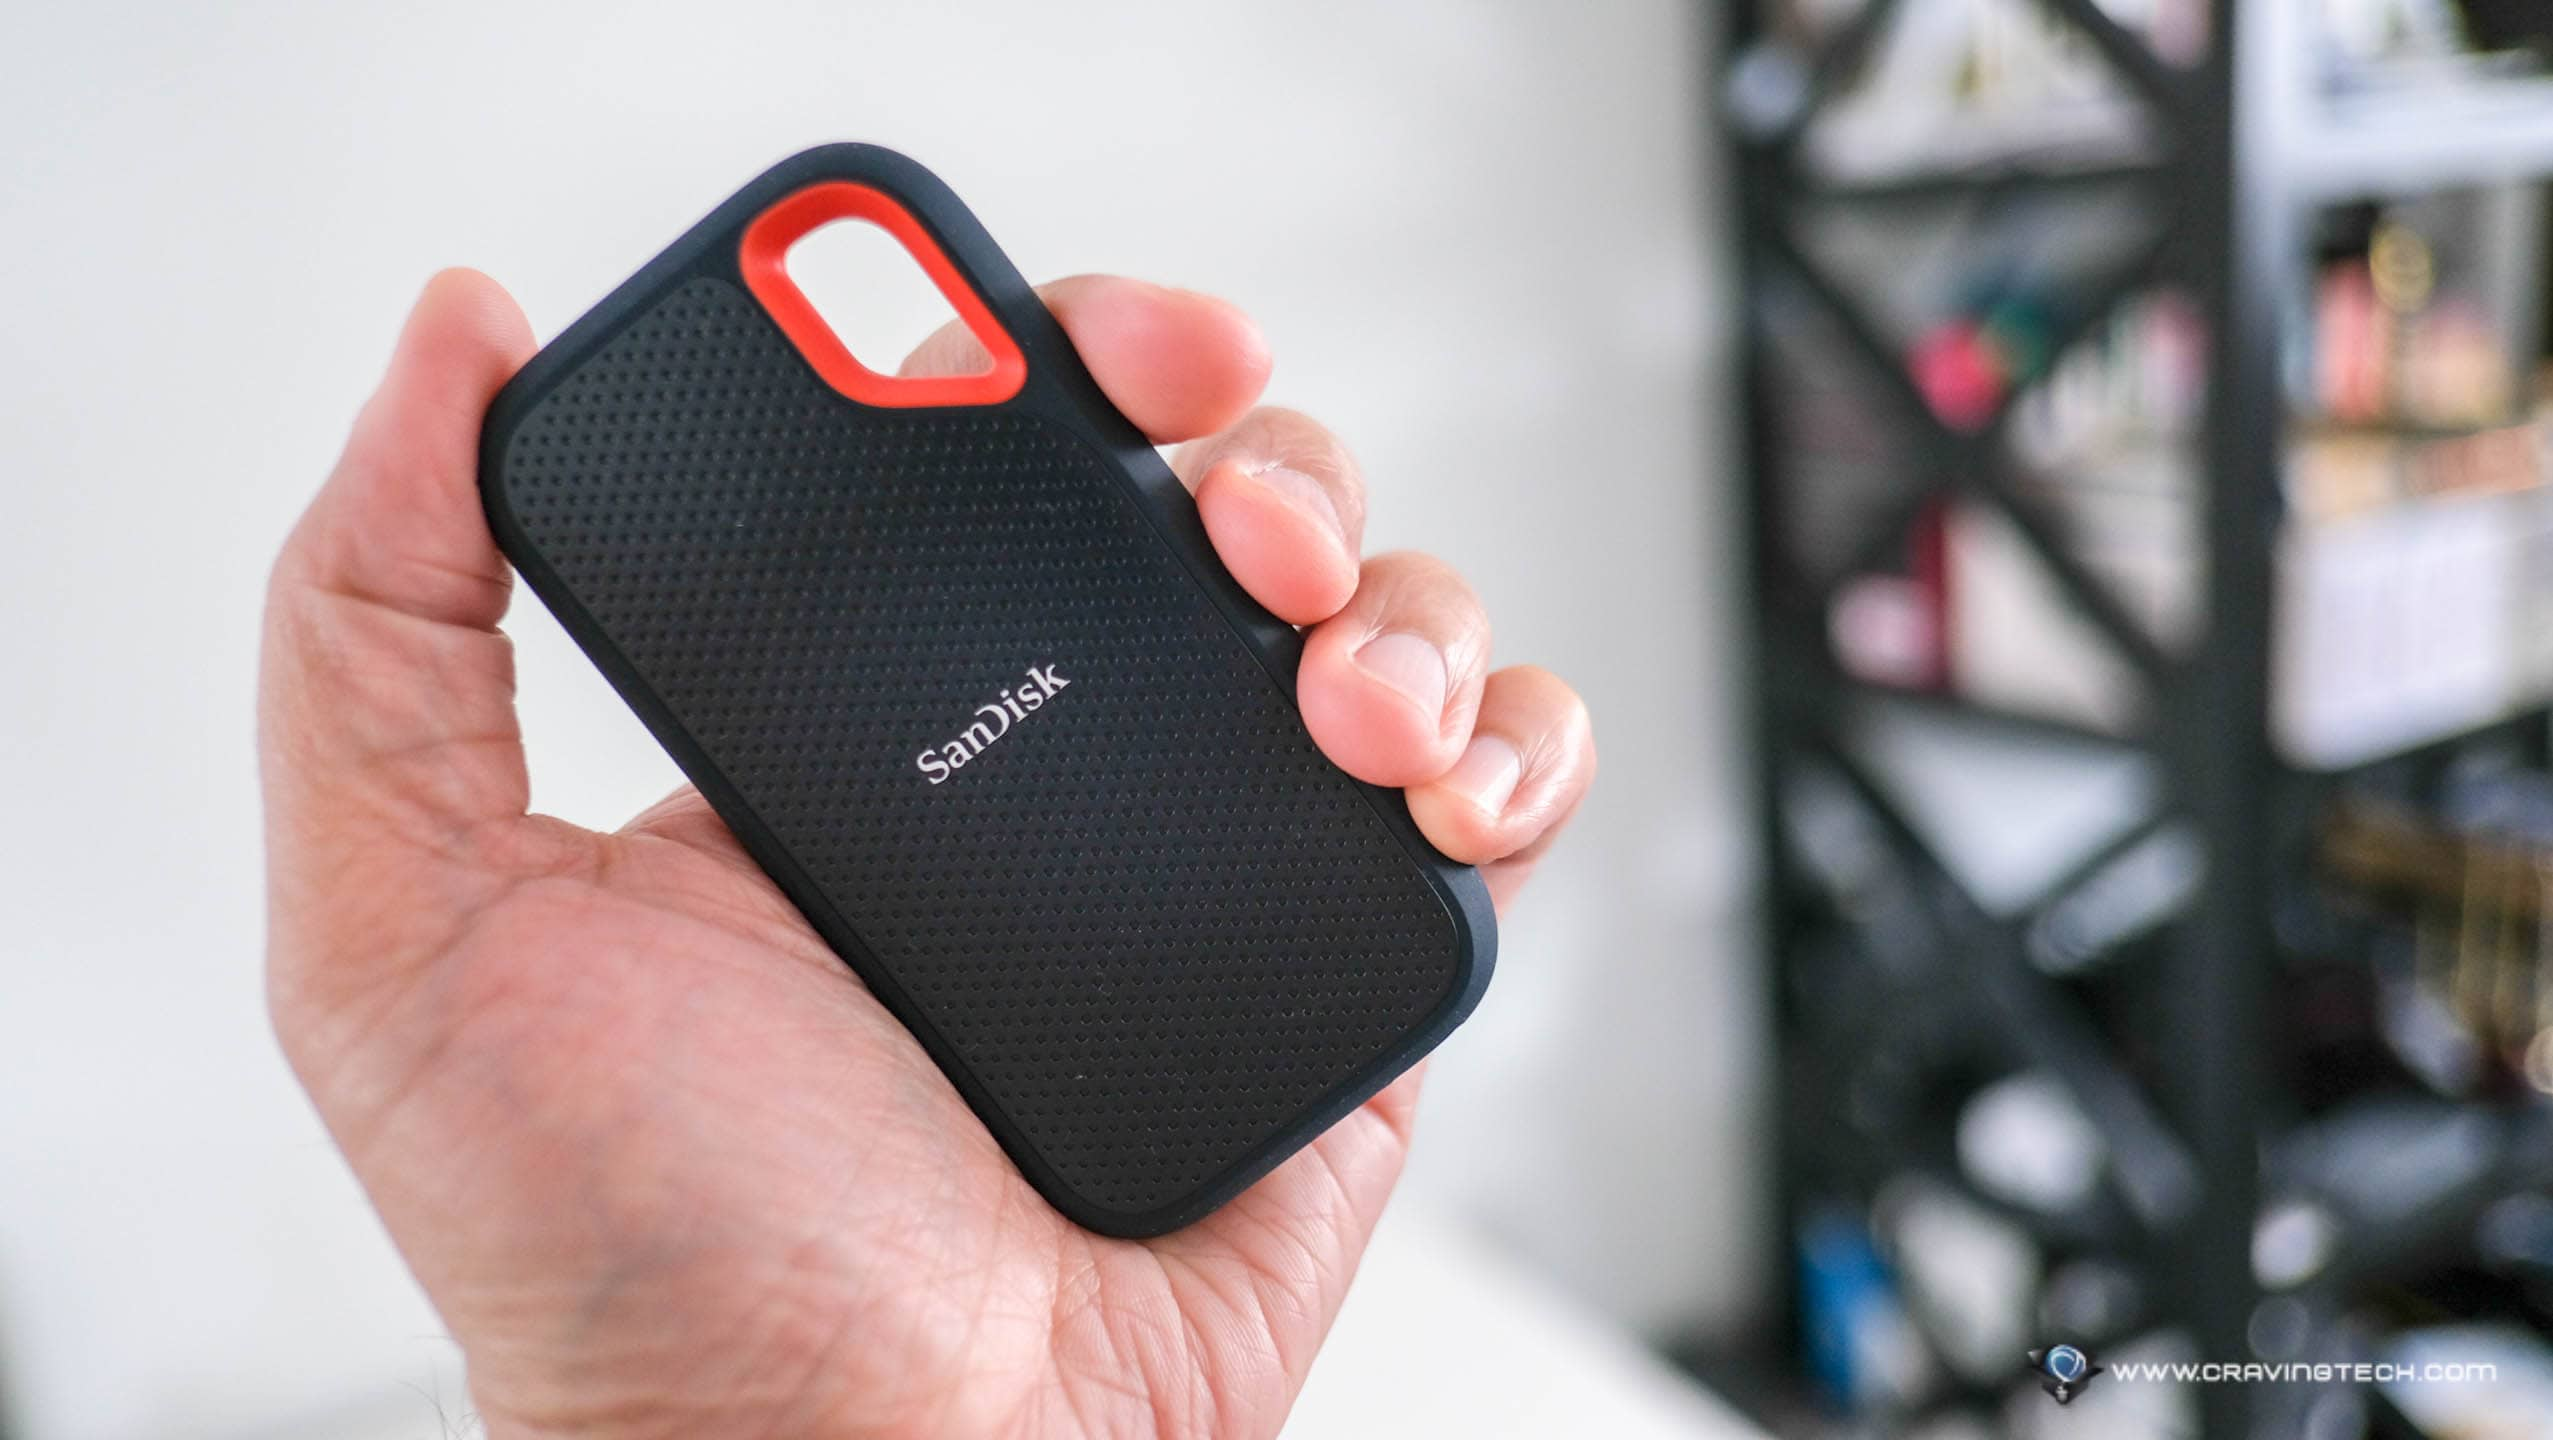 A slim, portable drive with impact & shock resistant + IP55 rating – SanDisk Extreme Portable SSD V2 Review